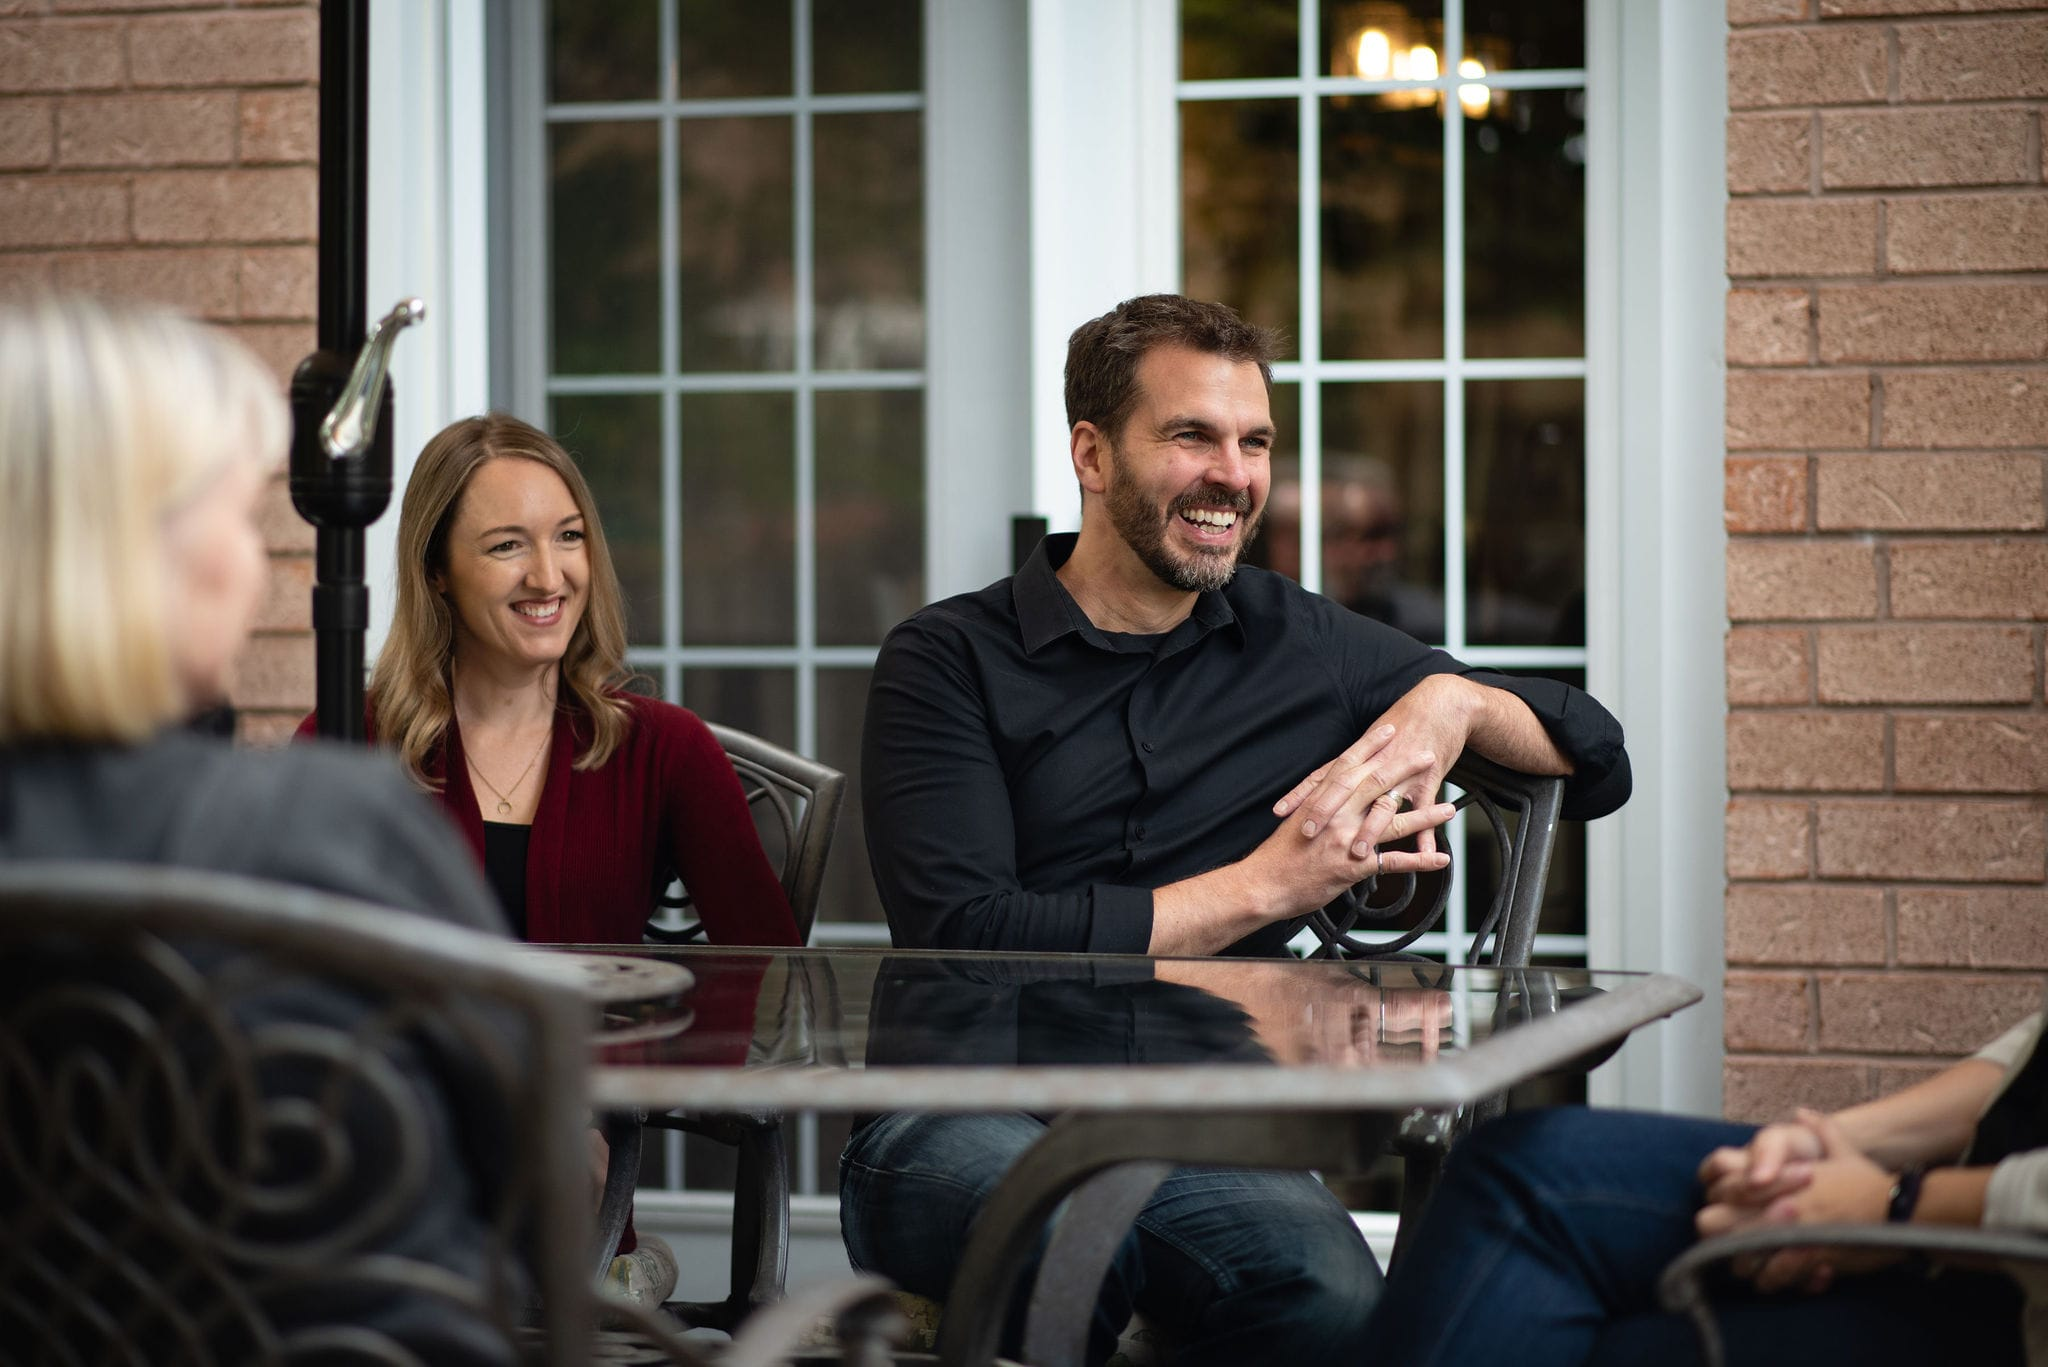 A smiling family at a patio table